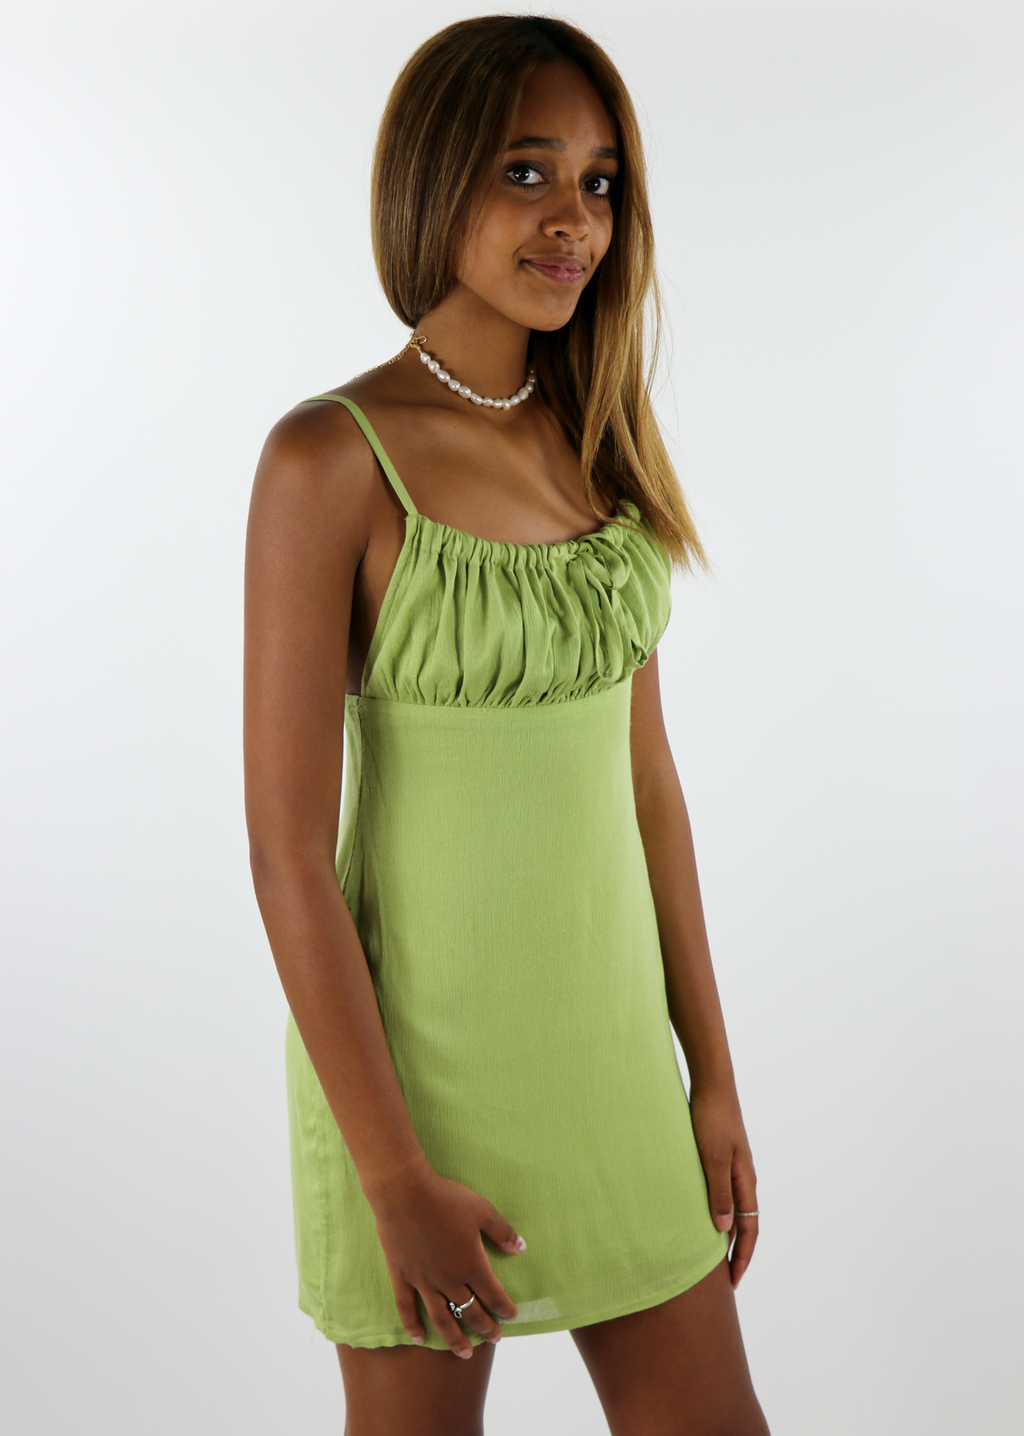 Green Light Dress ★ Green - Rock N Rags